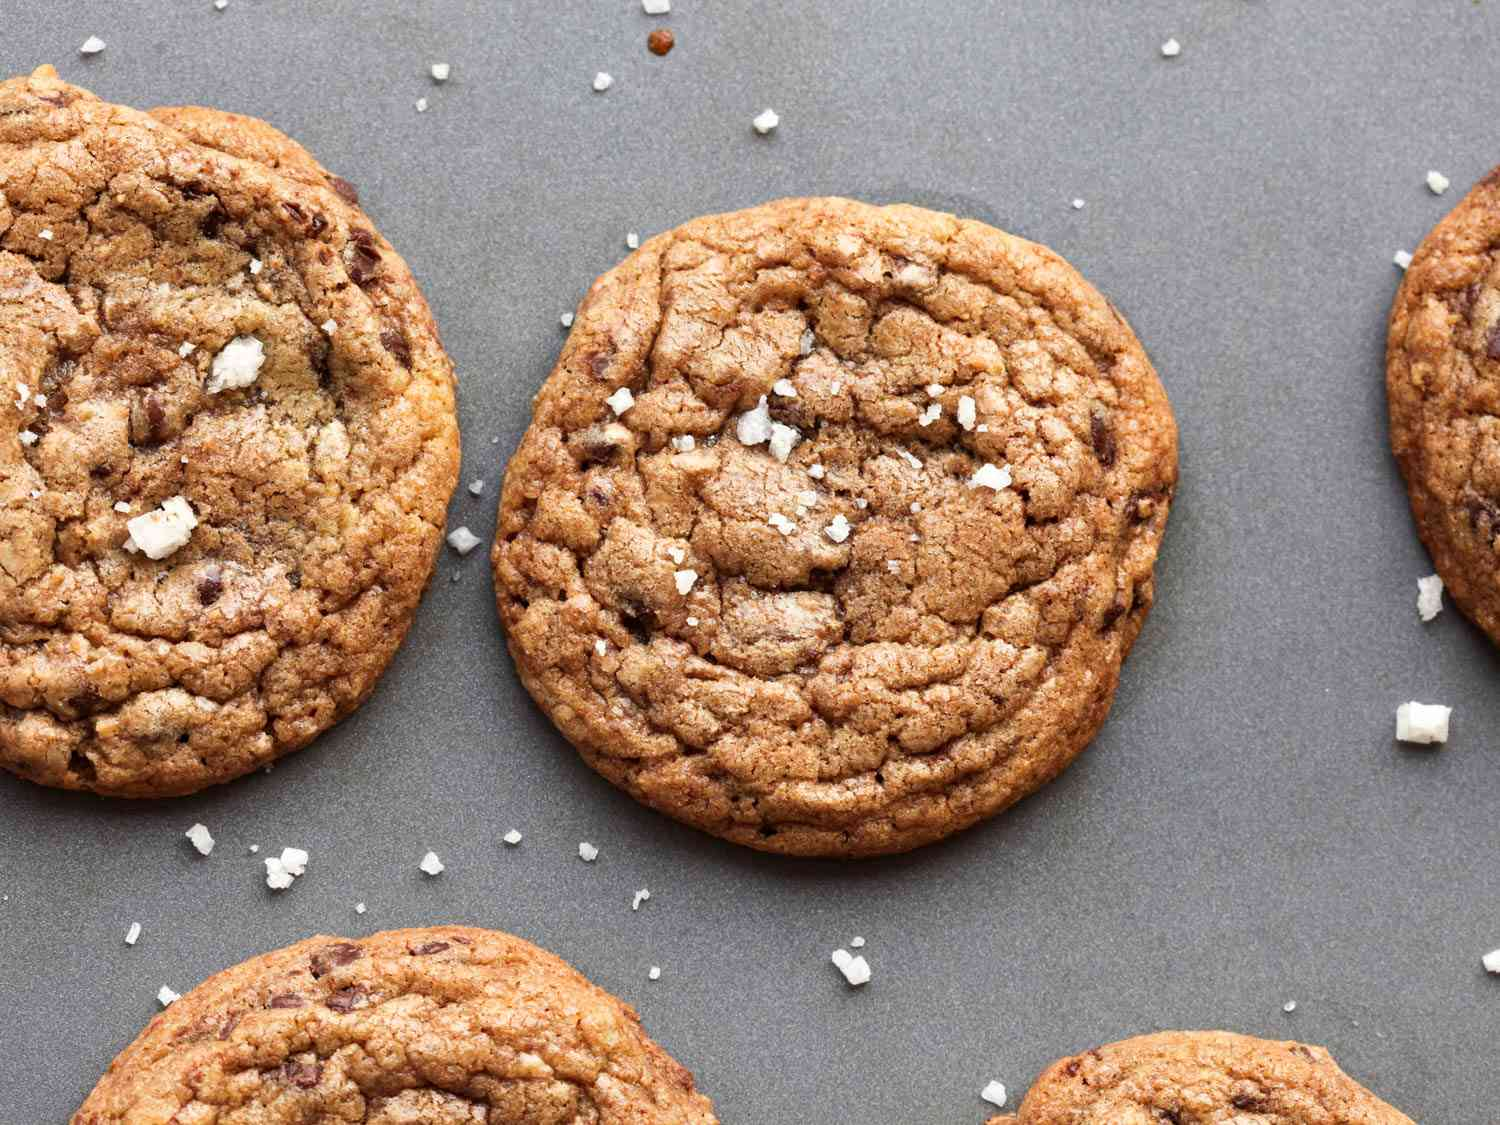 20171129-holiday-cookie-recipes-roundup-03.jpg